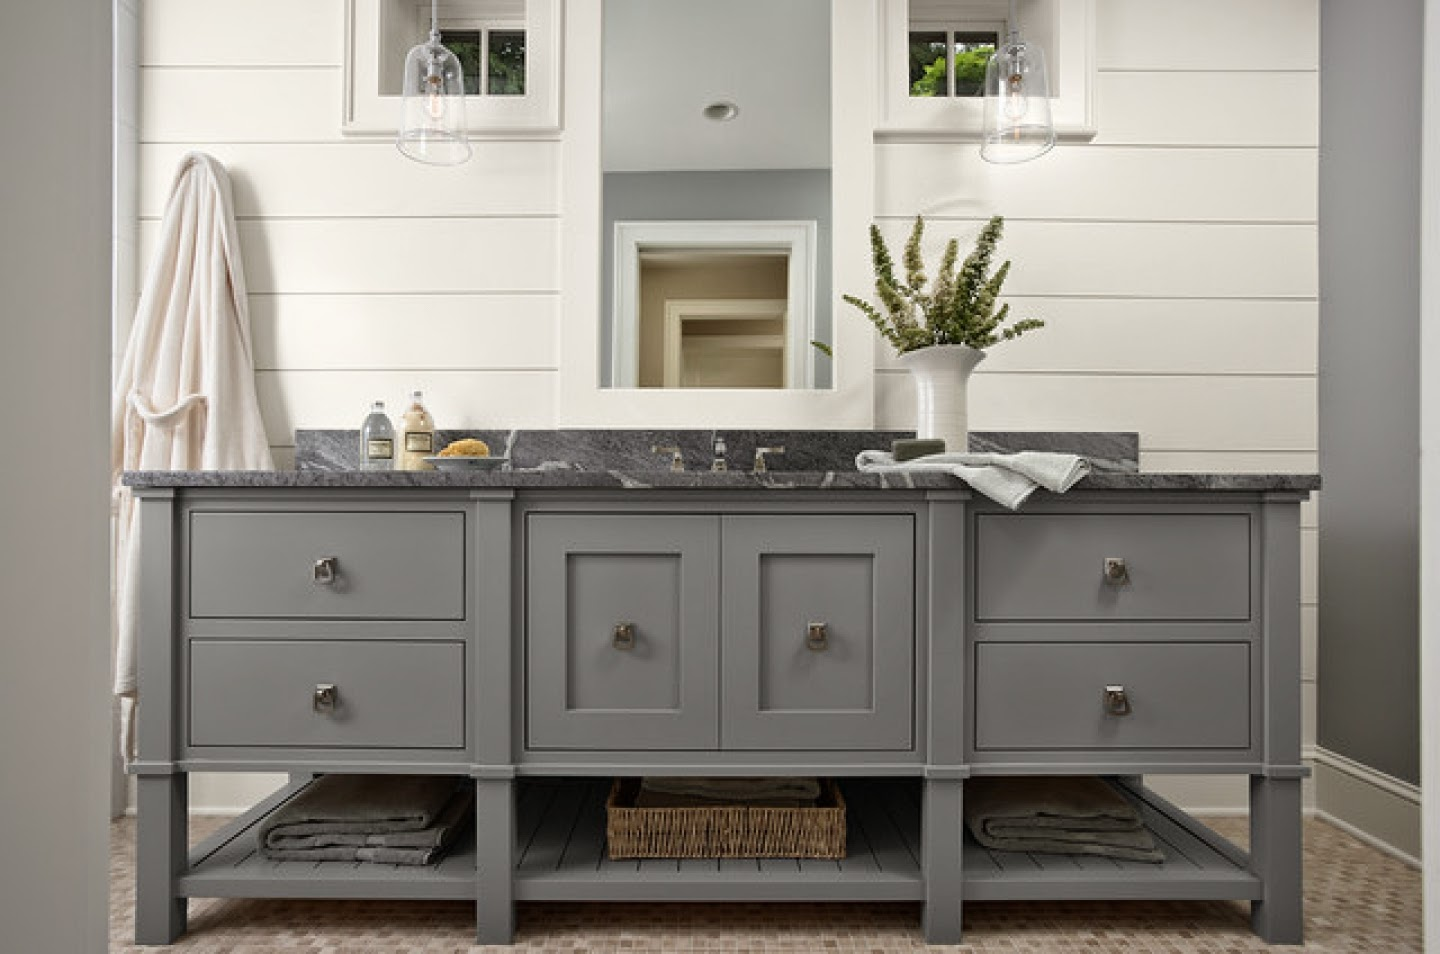 Newport beach interior designer skd studios shows off amazing bathroom vanities and sinks skd Design bathroom vanity cabinets